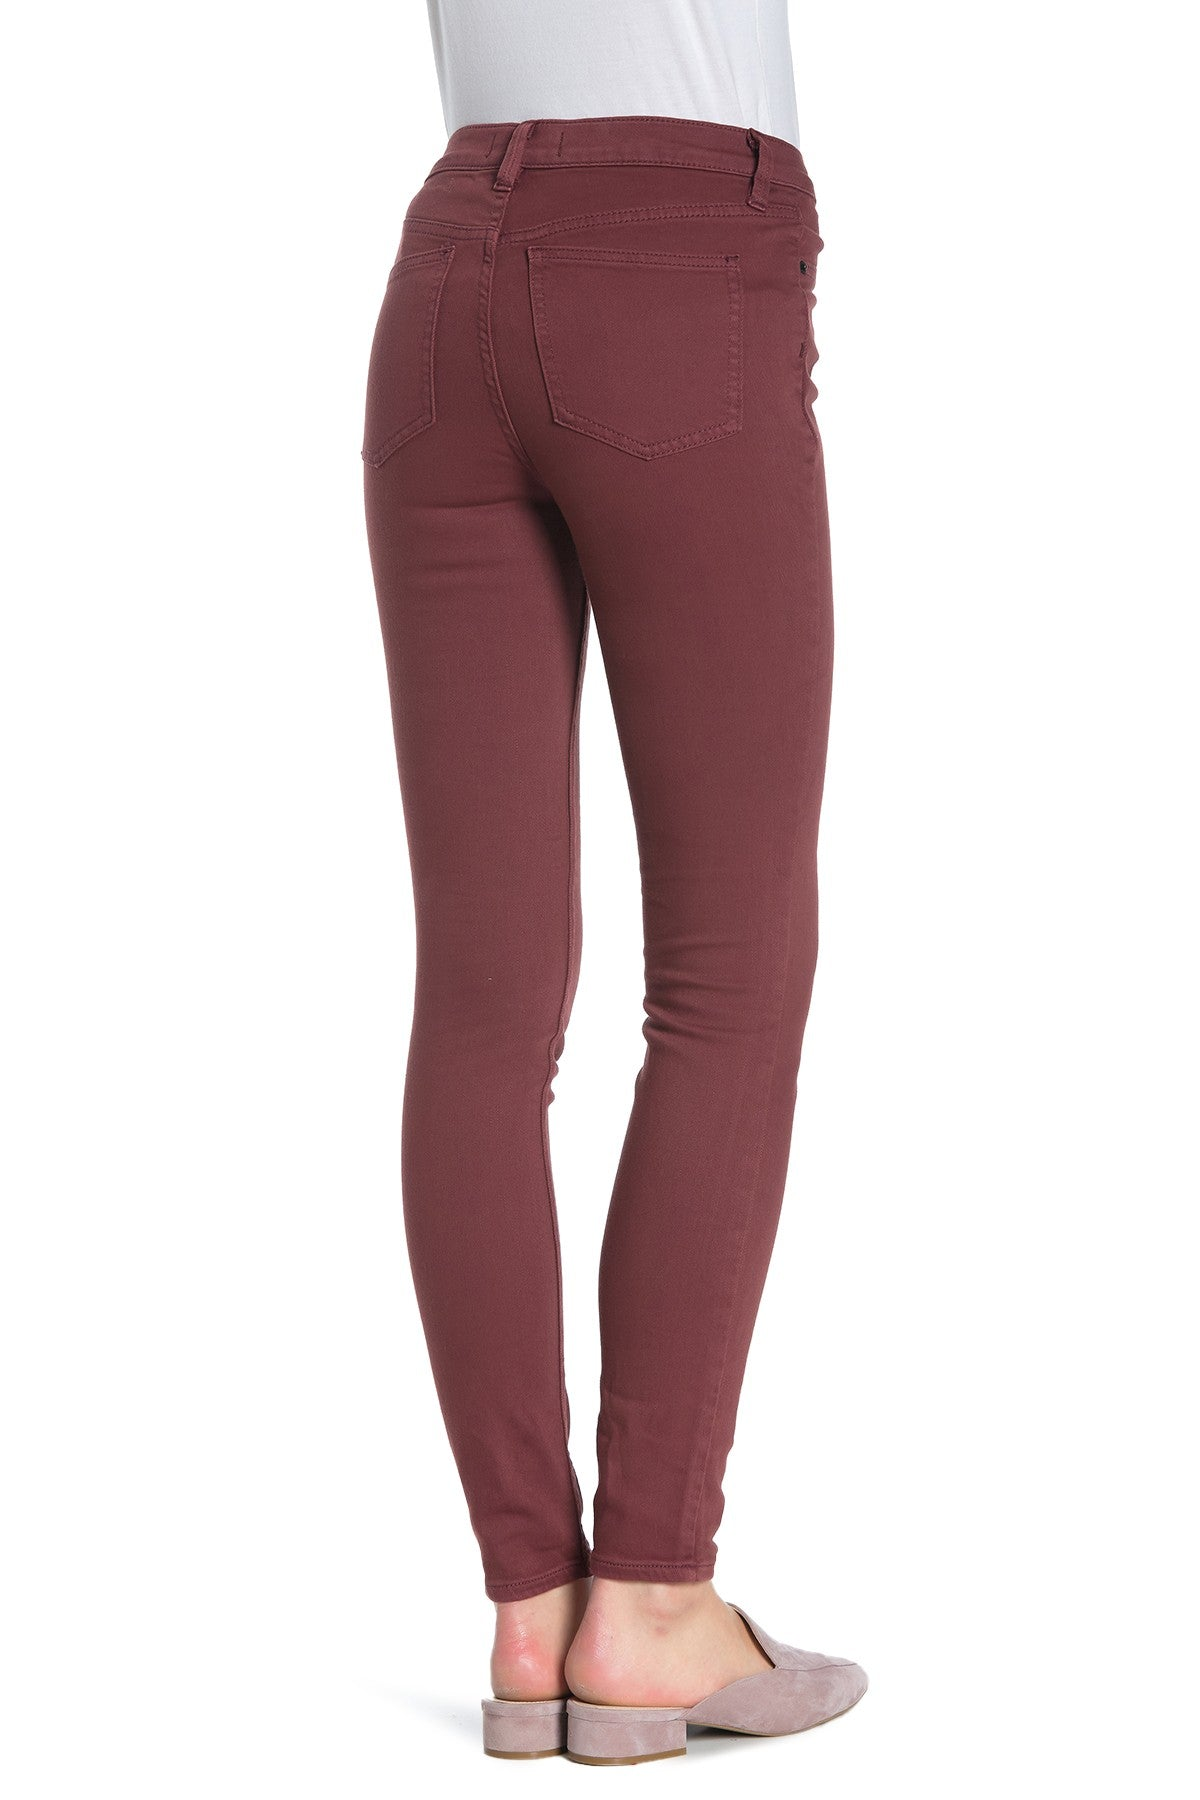 Free People Skinny High Rise Jeans Red Mocha 27 - Gear Relapse